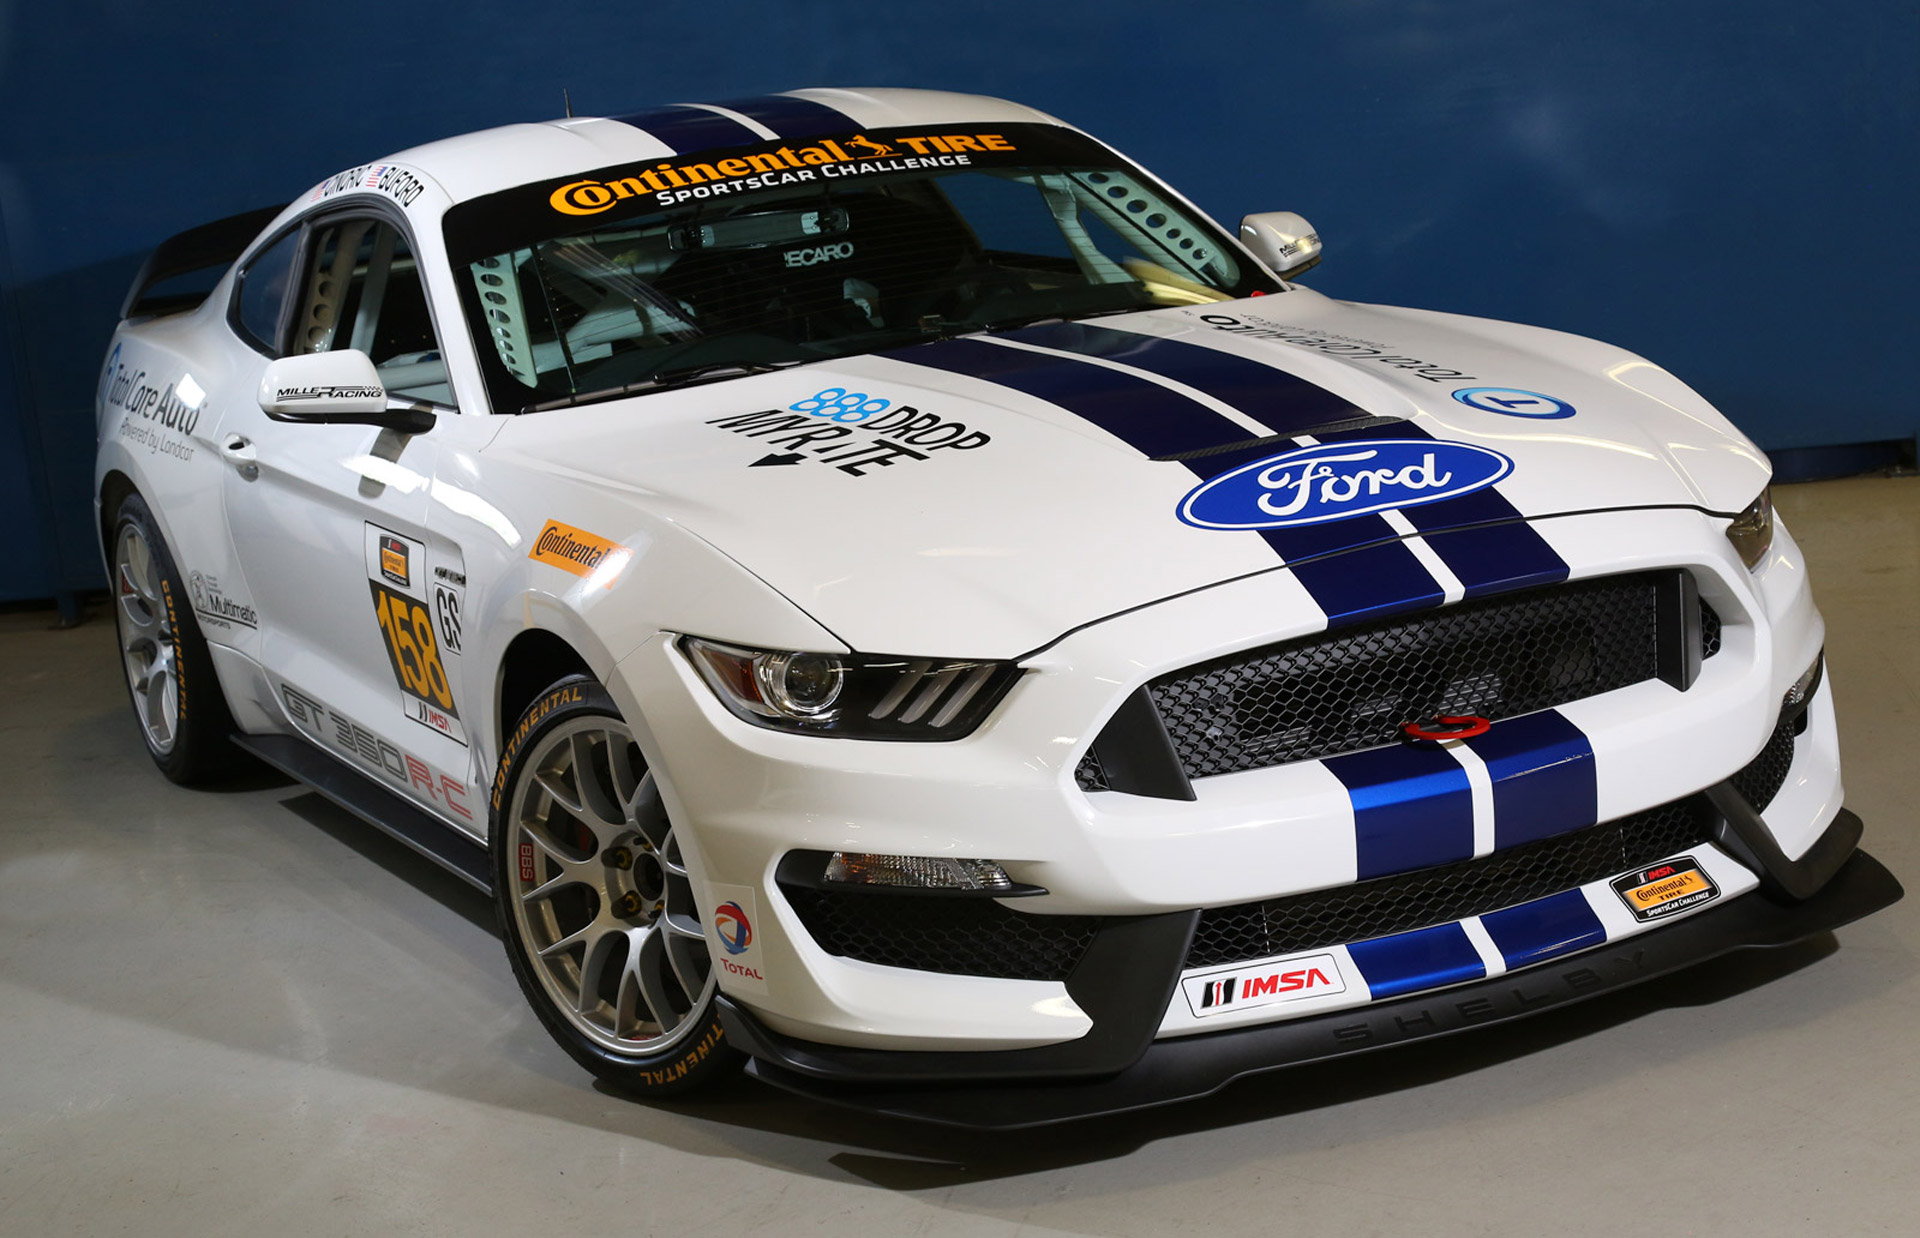 Gt350r Review >> 2015 Ford Mustang Shelby GT350R-C Race Car Revealed